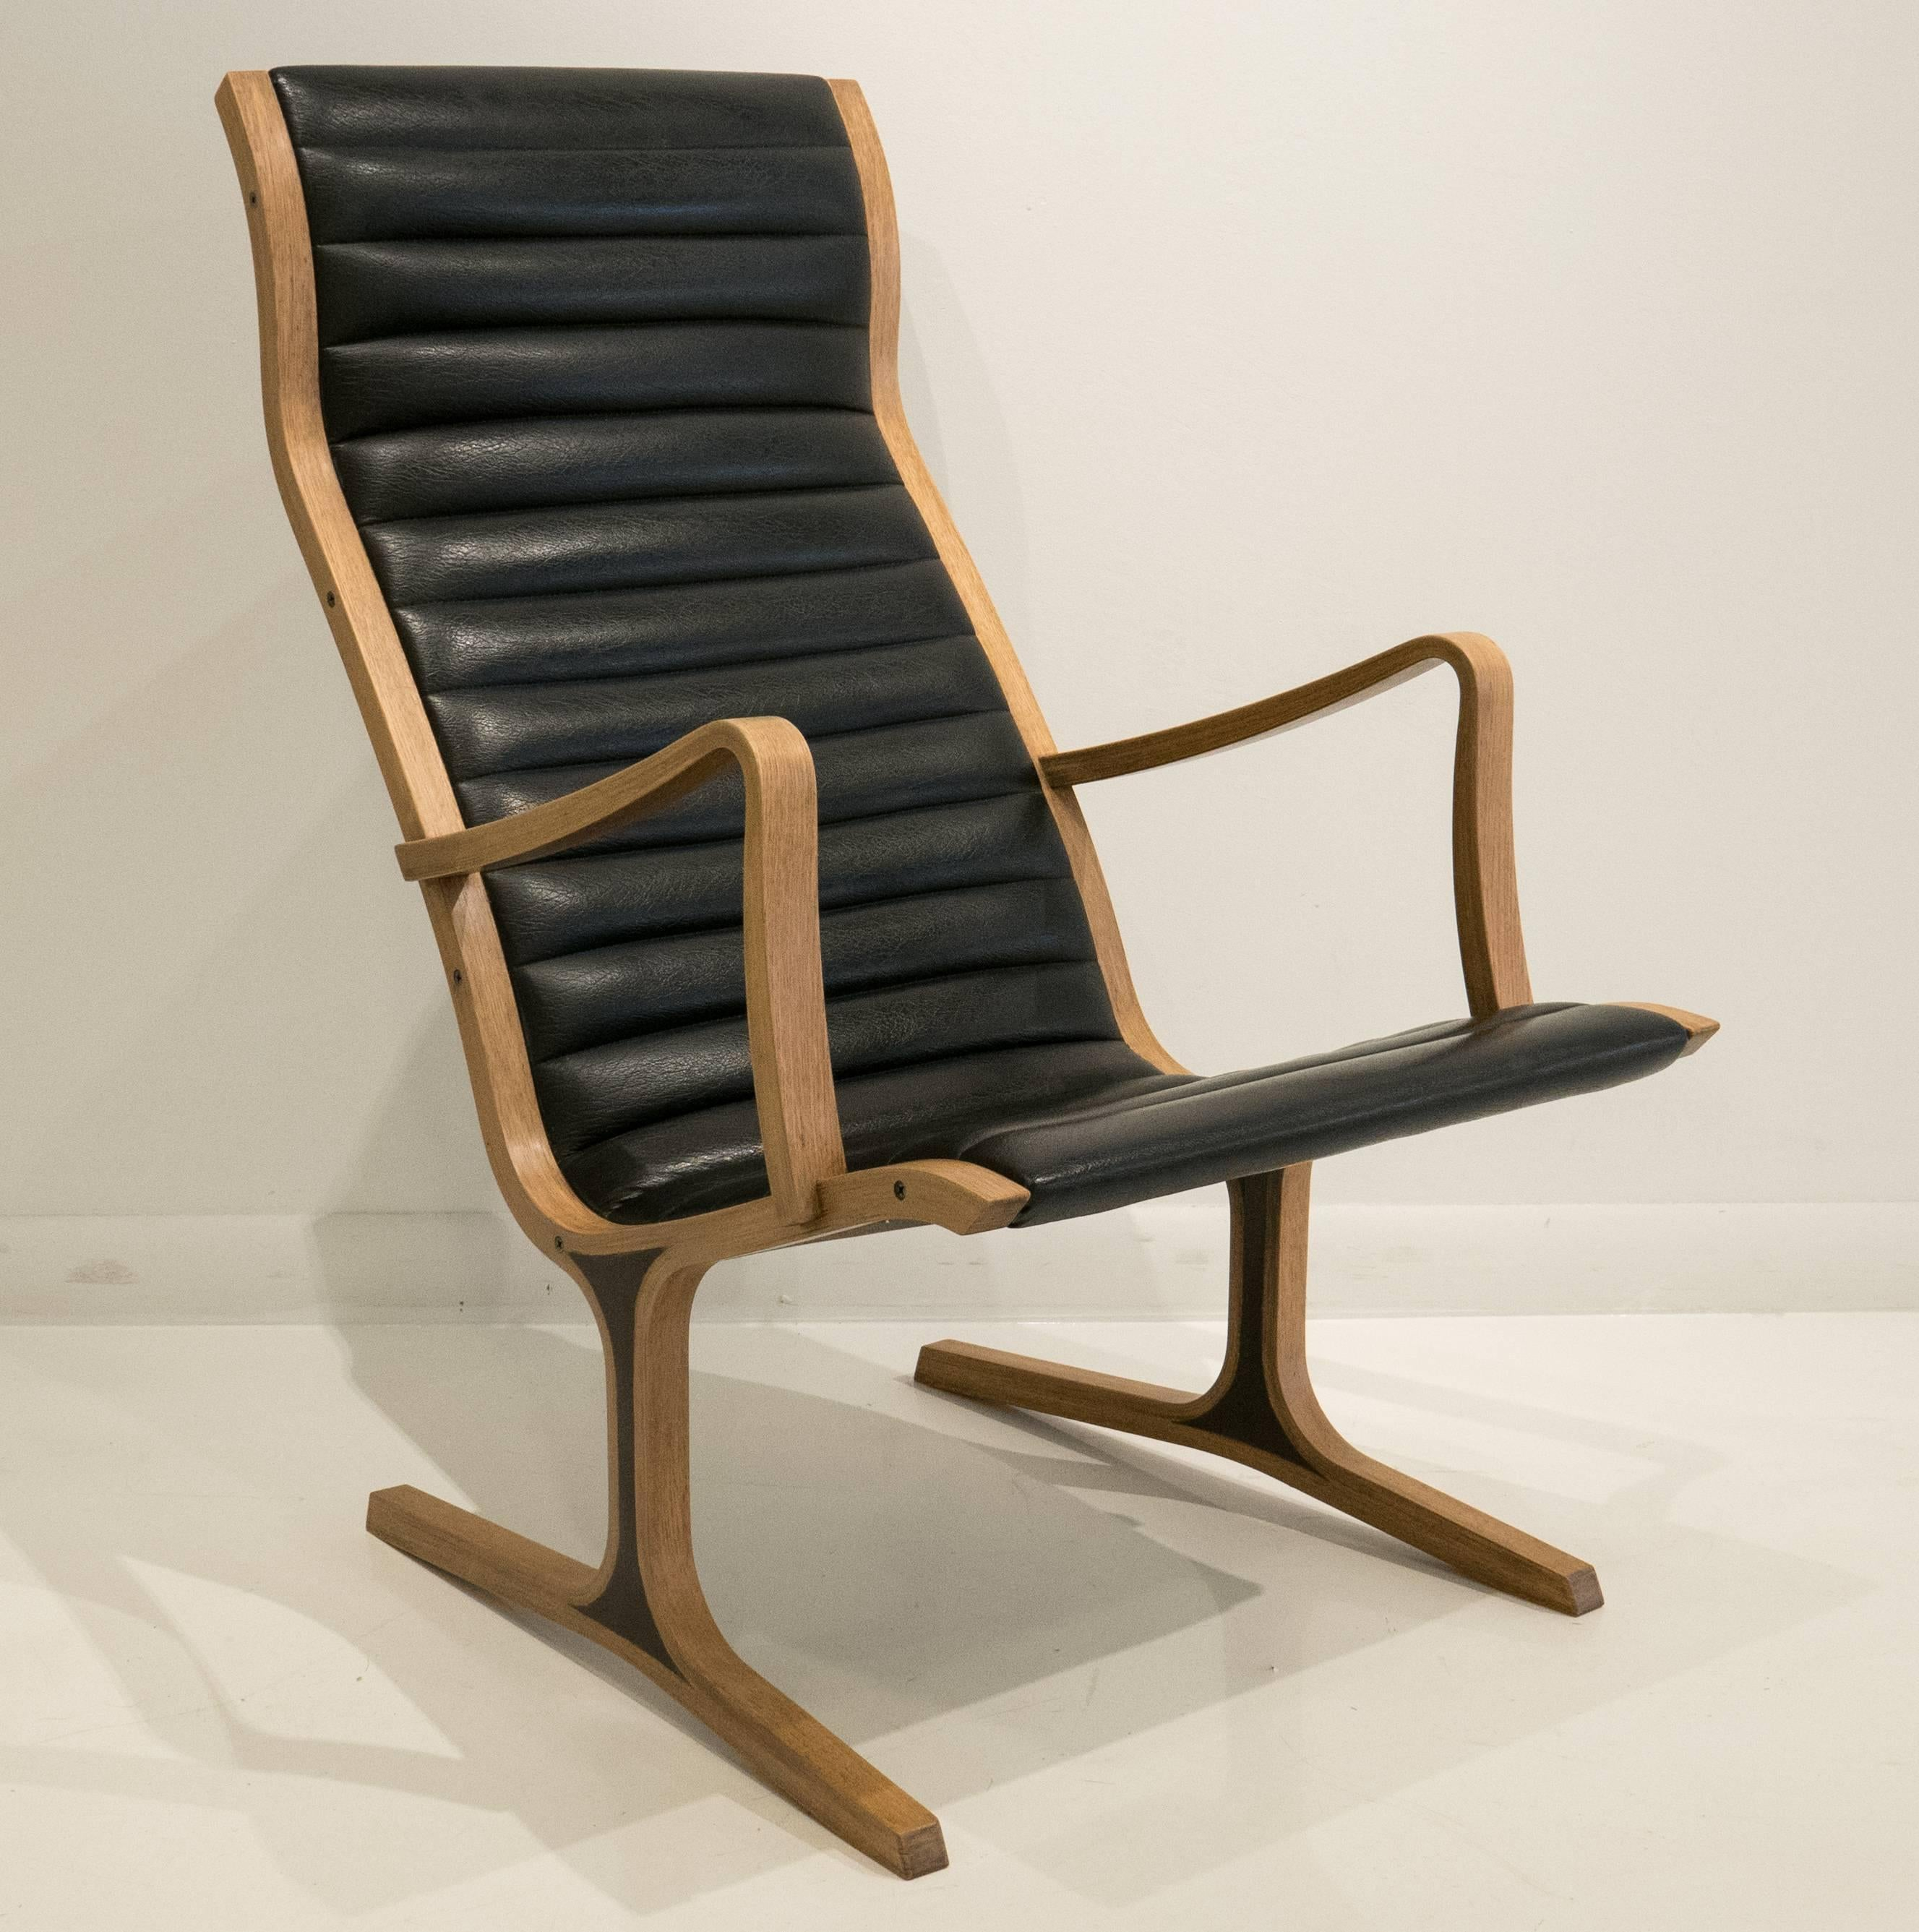 Japanese Heron Chair with Footrest by Mitsumasa Sugasawa For Sale & Heron Chair with Footrest by Mitsumasa Sugasawa For Sale at 1stdibs